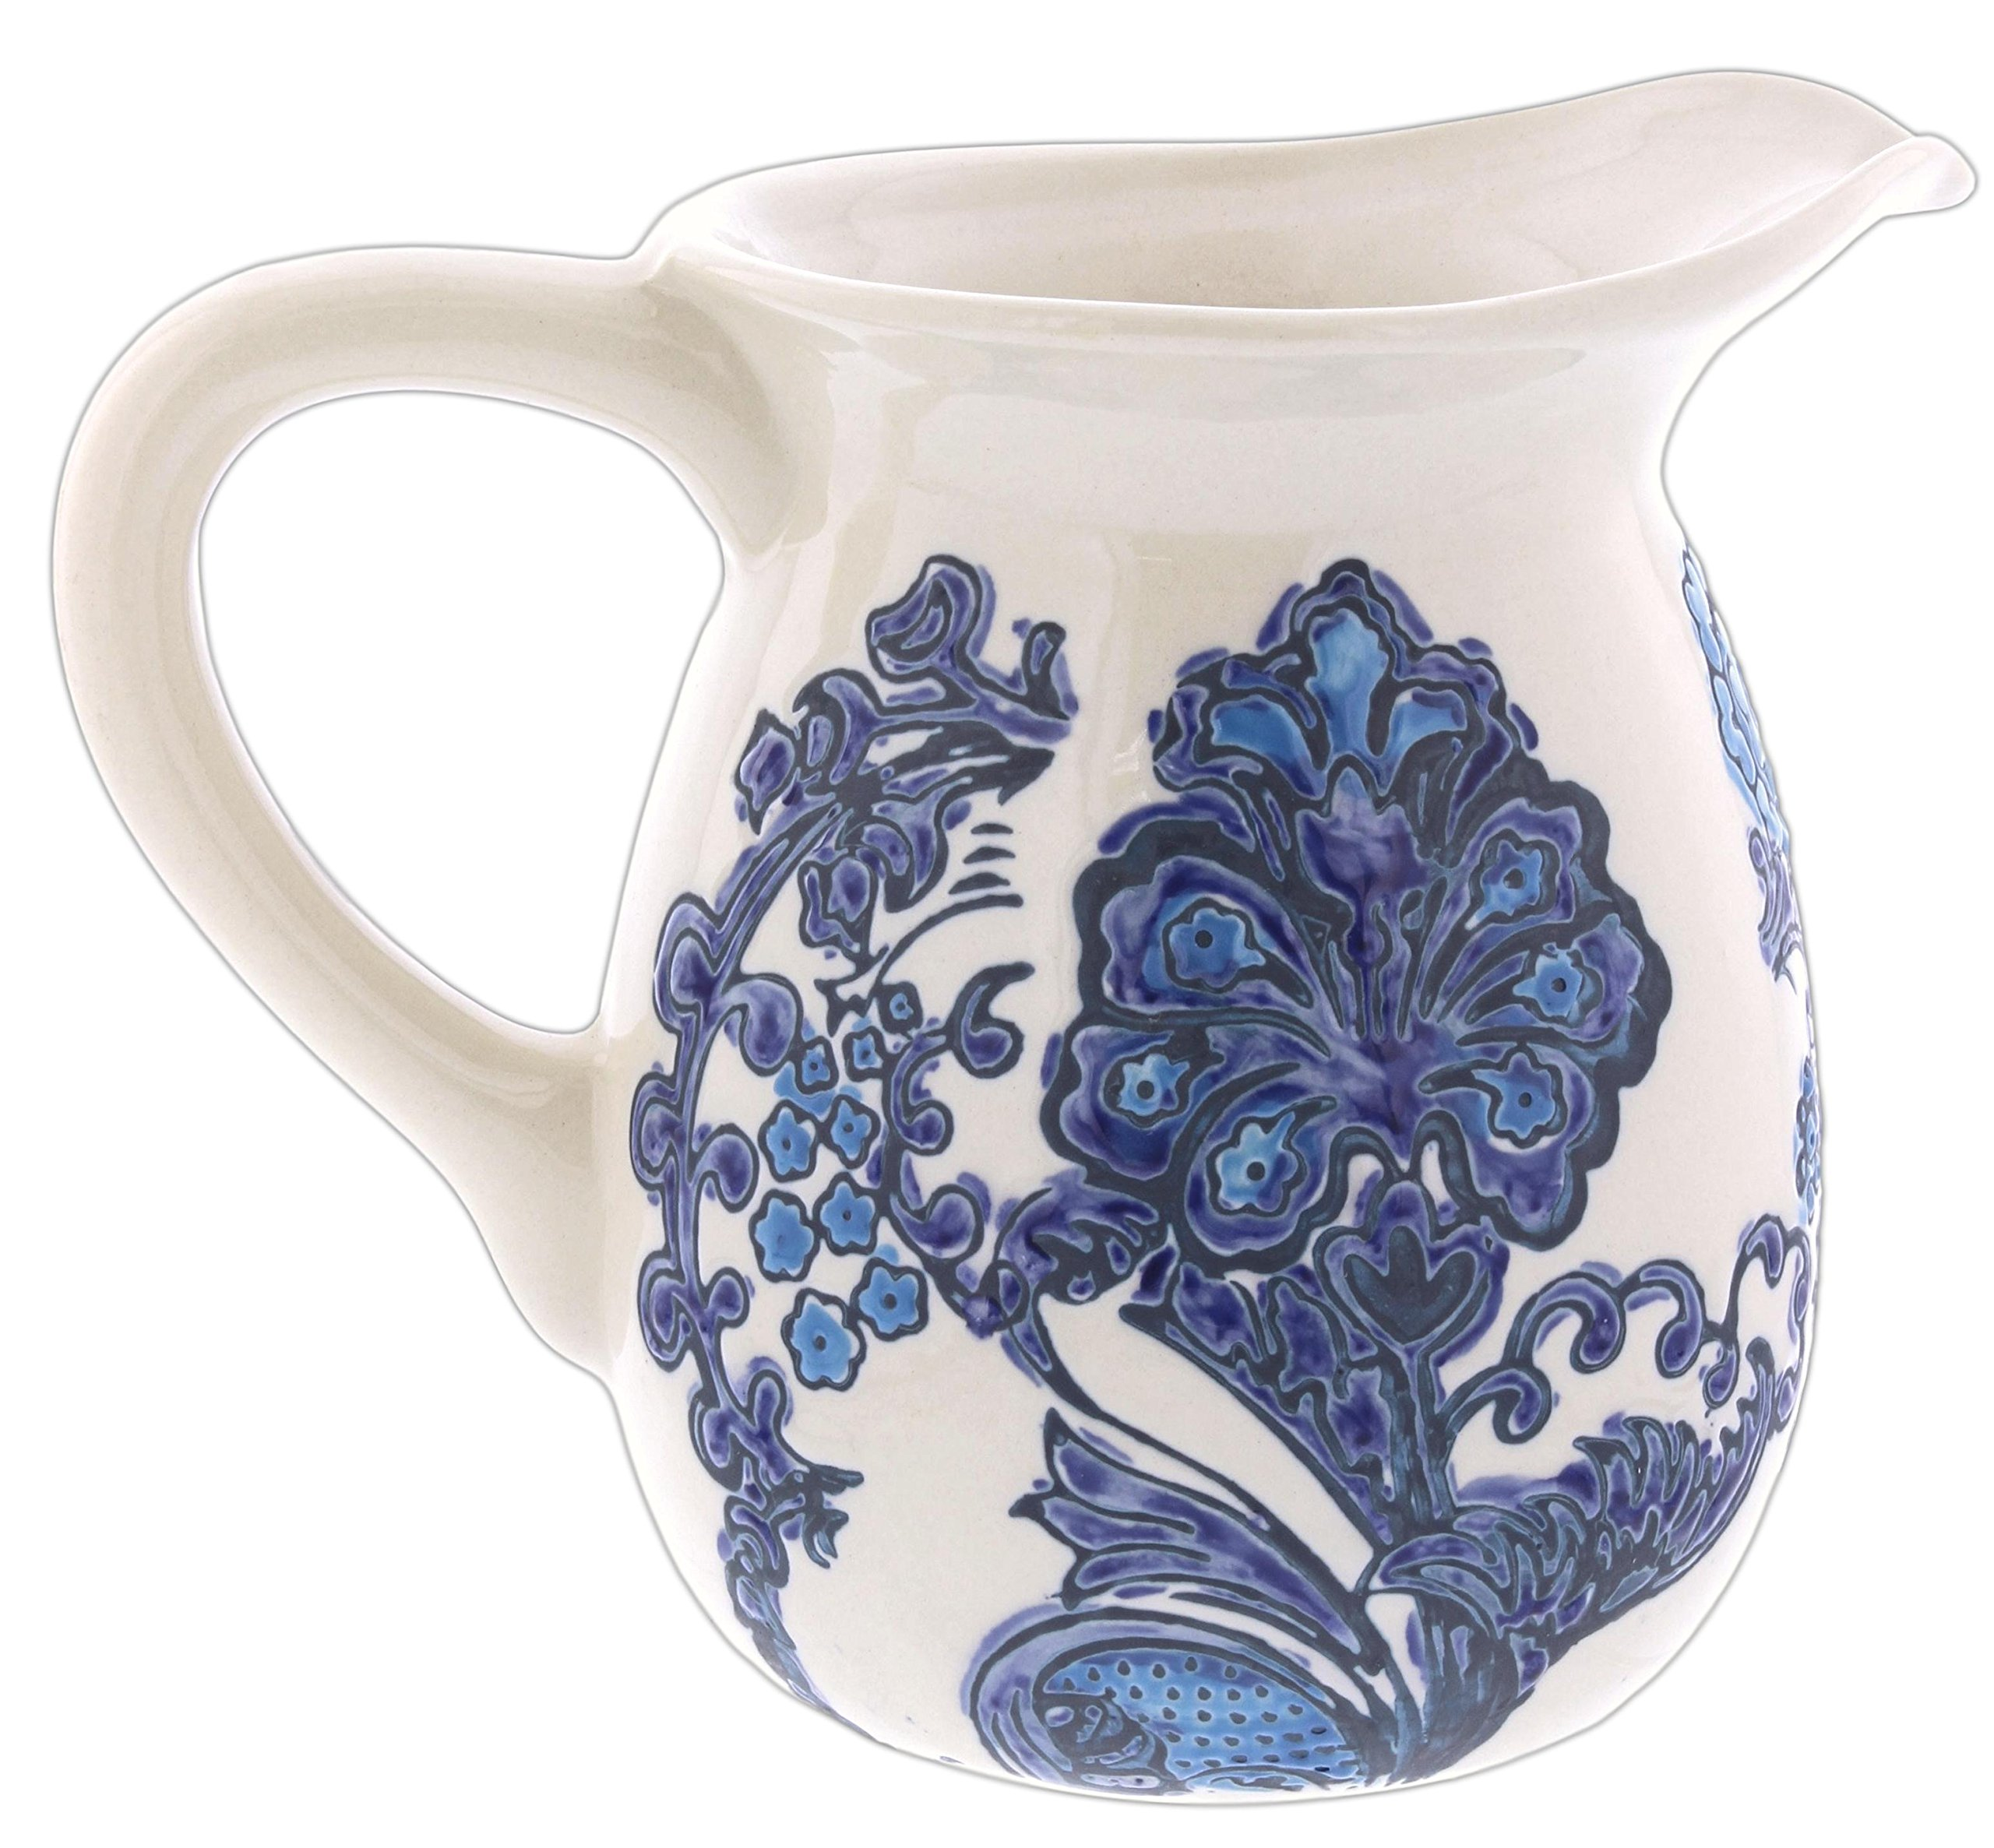 Lucky Winner 7'' Blue & White Delft Style Floral Ceramic Pitcher by Lucky Winner